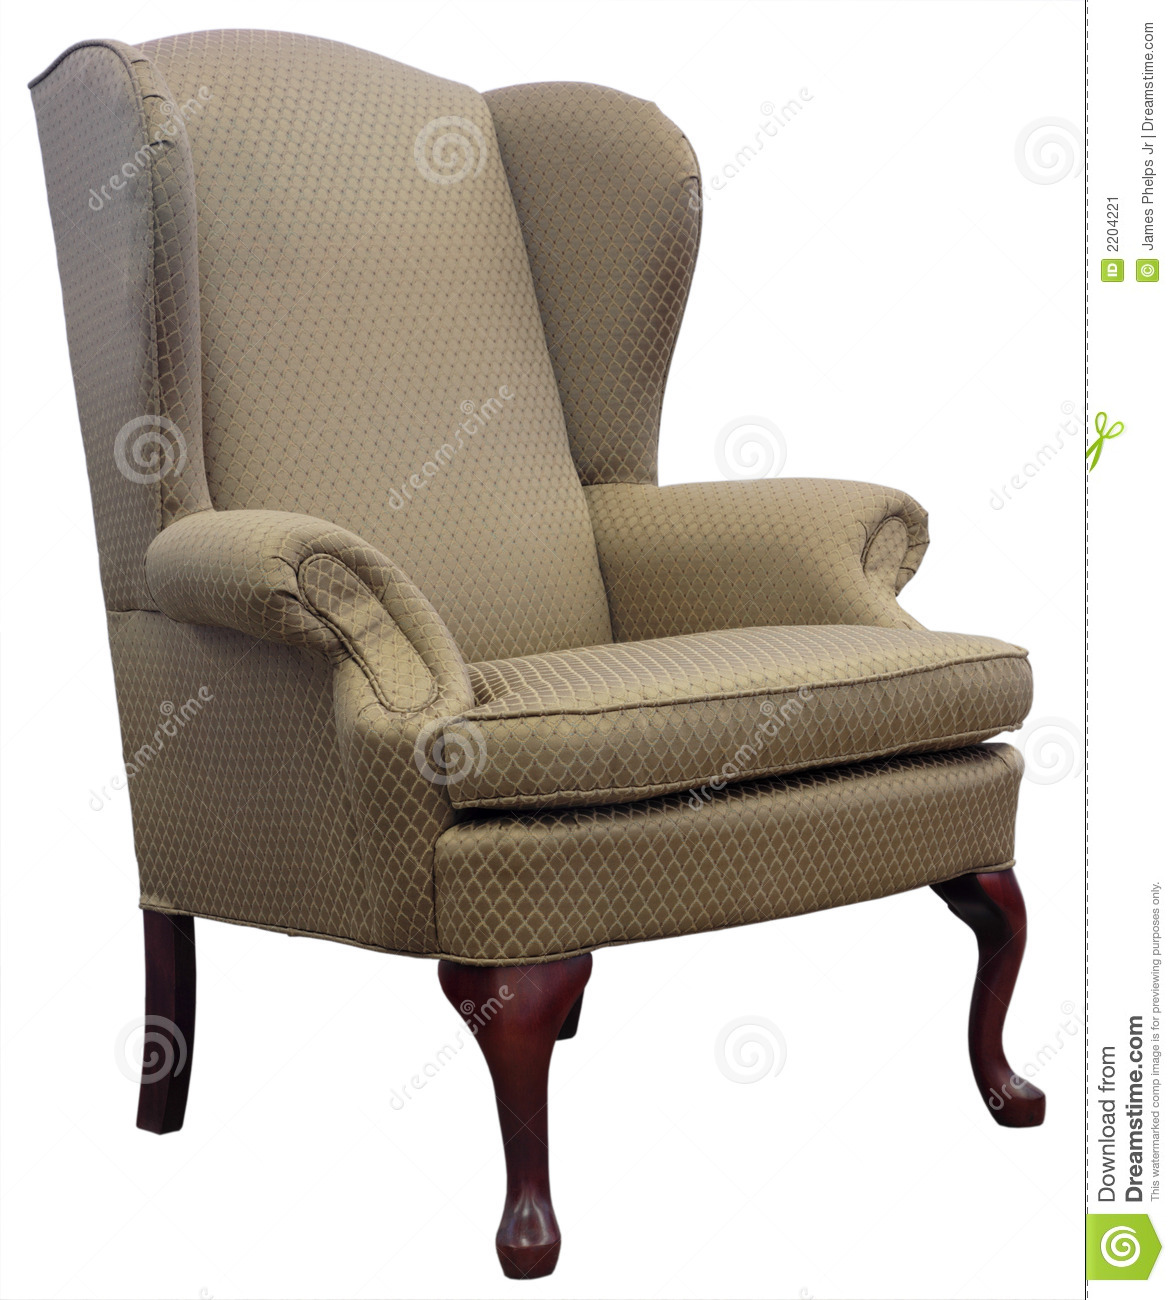 Queen Anne Style Wing Chair  sc 1 st  Dreamstime.com & Queen Anne Style Wing Chair Stock Image - Image of furnishings ...